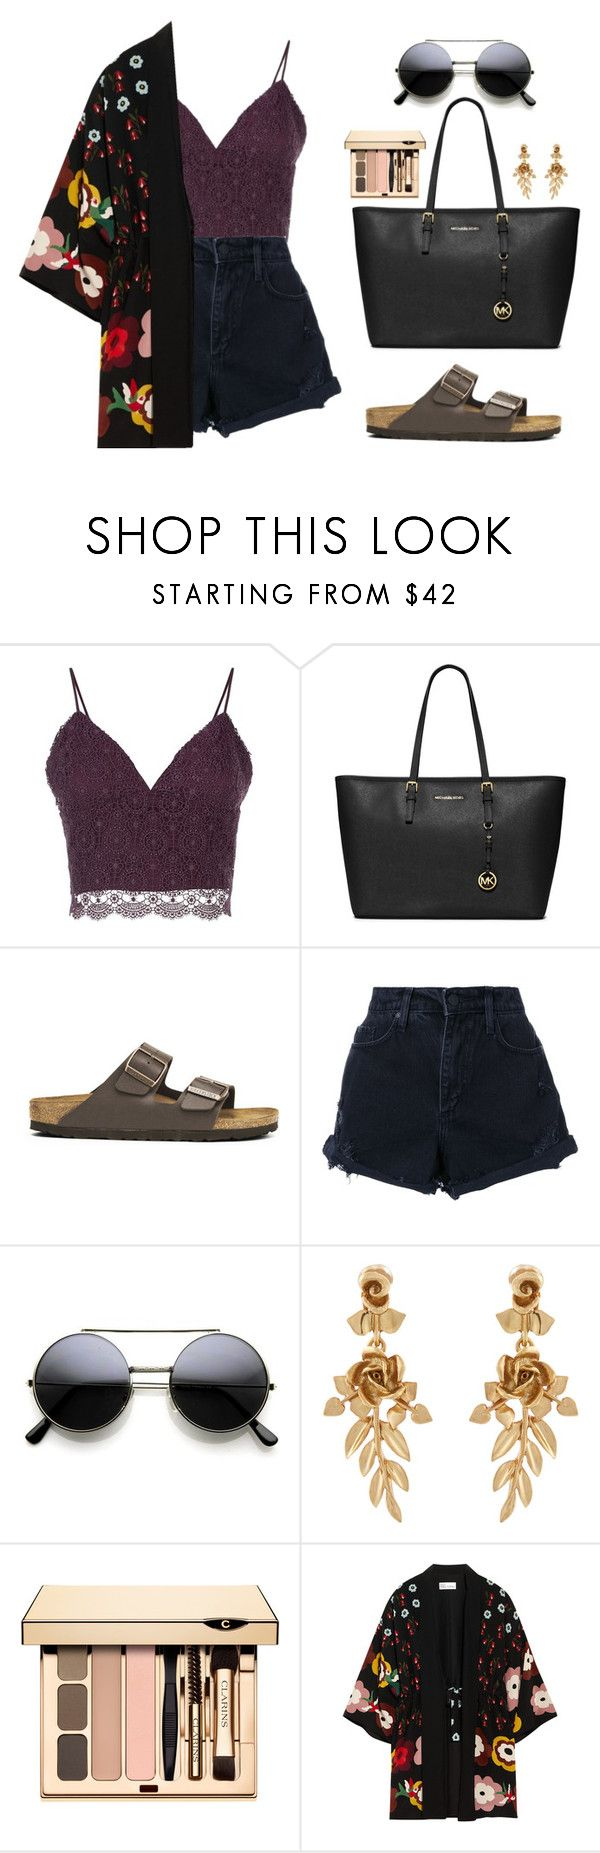 """""""Seungkwan X Christmas Beach Party"""" by jleeoutfitters ❤ liked on Polyvore featuring Related, MICHAEL Michael Kors, Birkenstock, Nobody Denim, Oscar de la Renta and RED Valentino"""